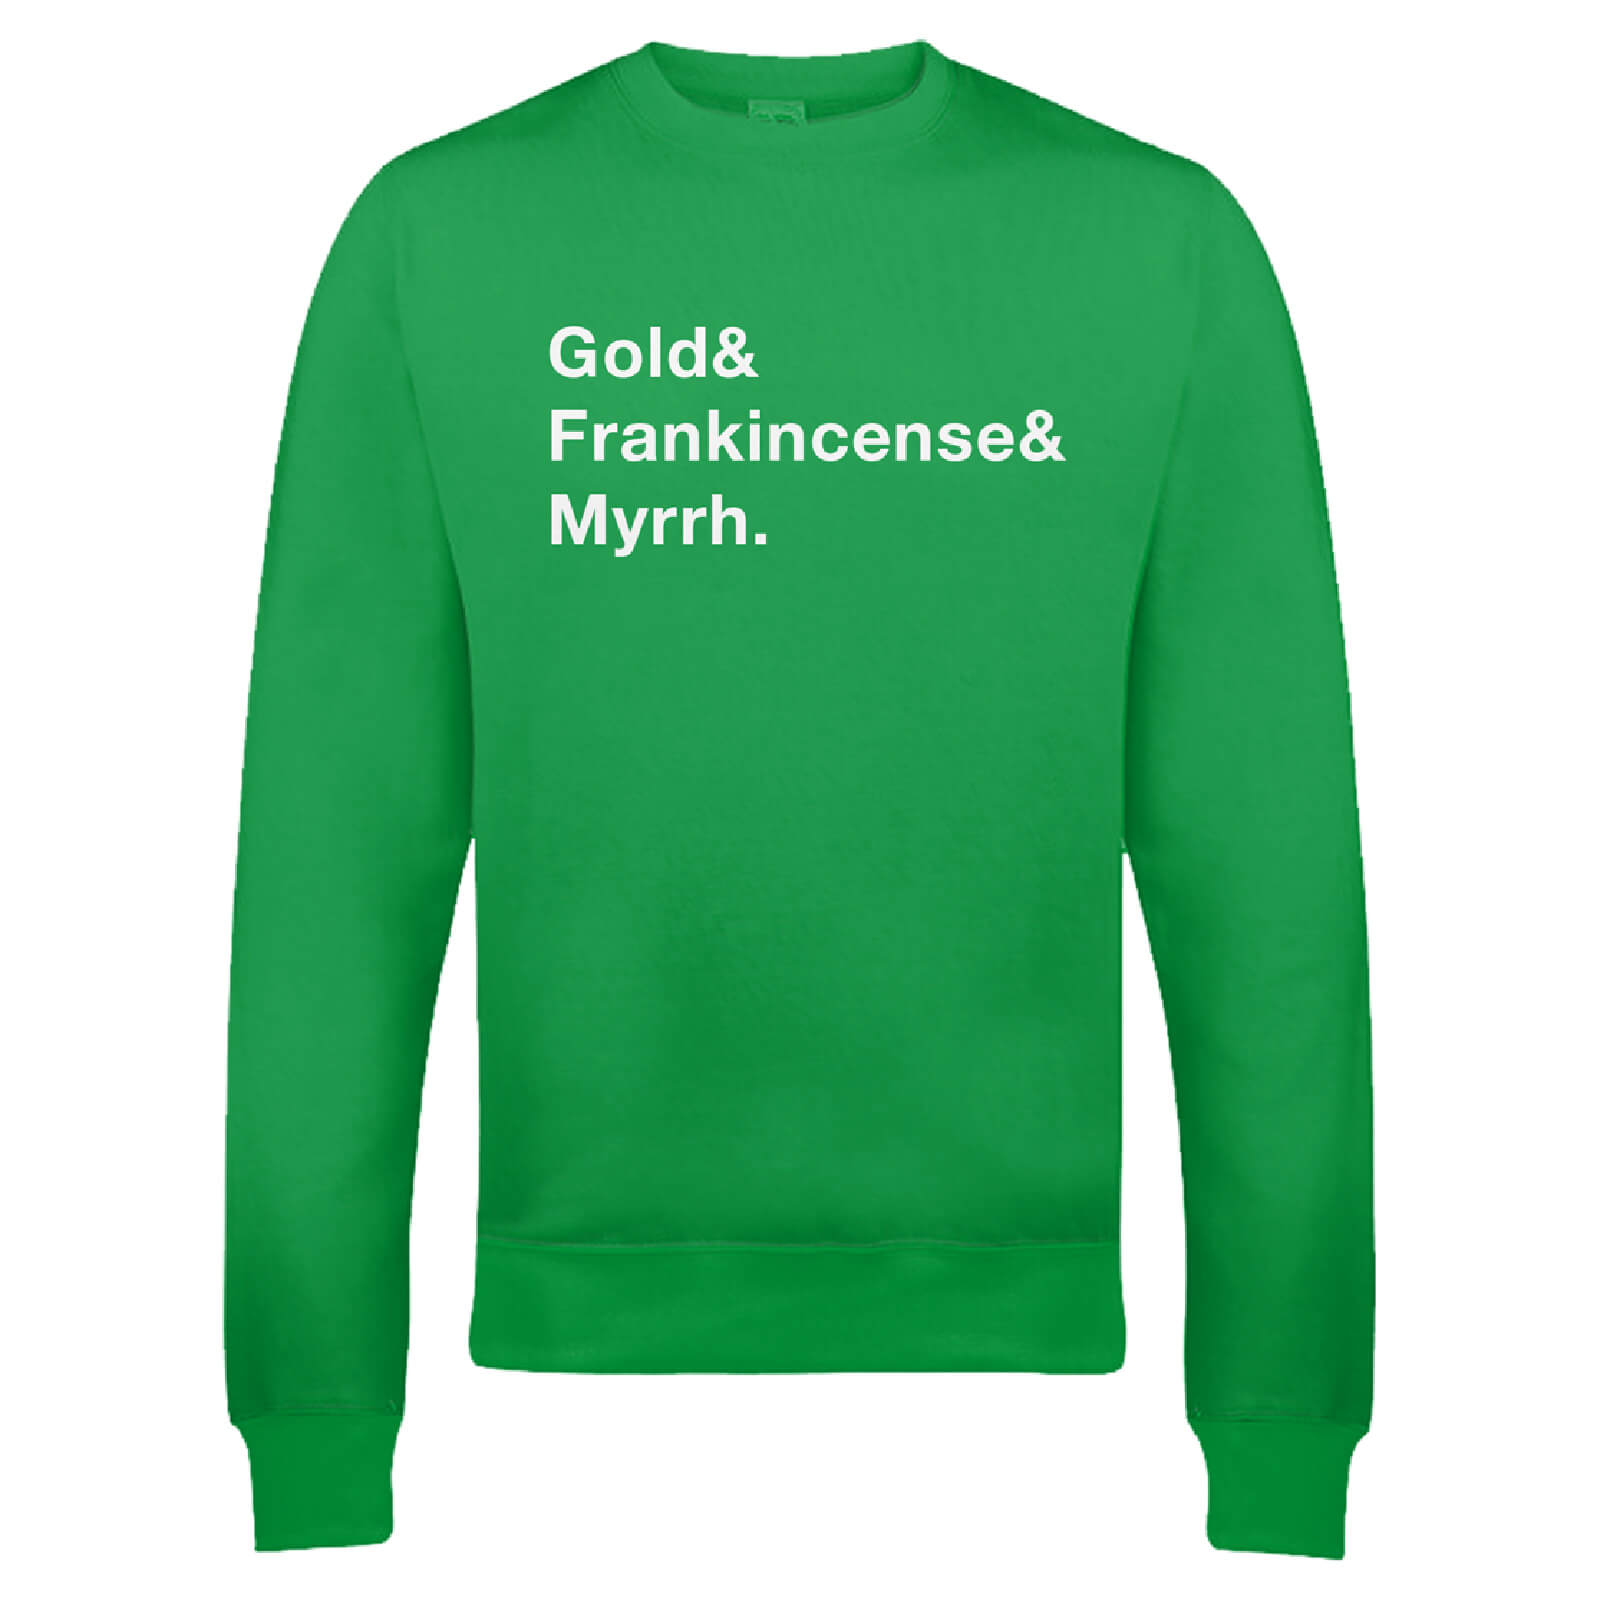 Gold Frank & Myrr Christmas Sweatshirt - Green